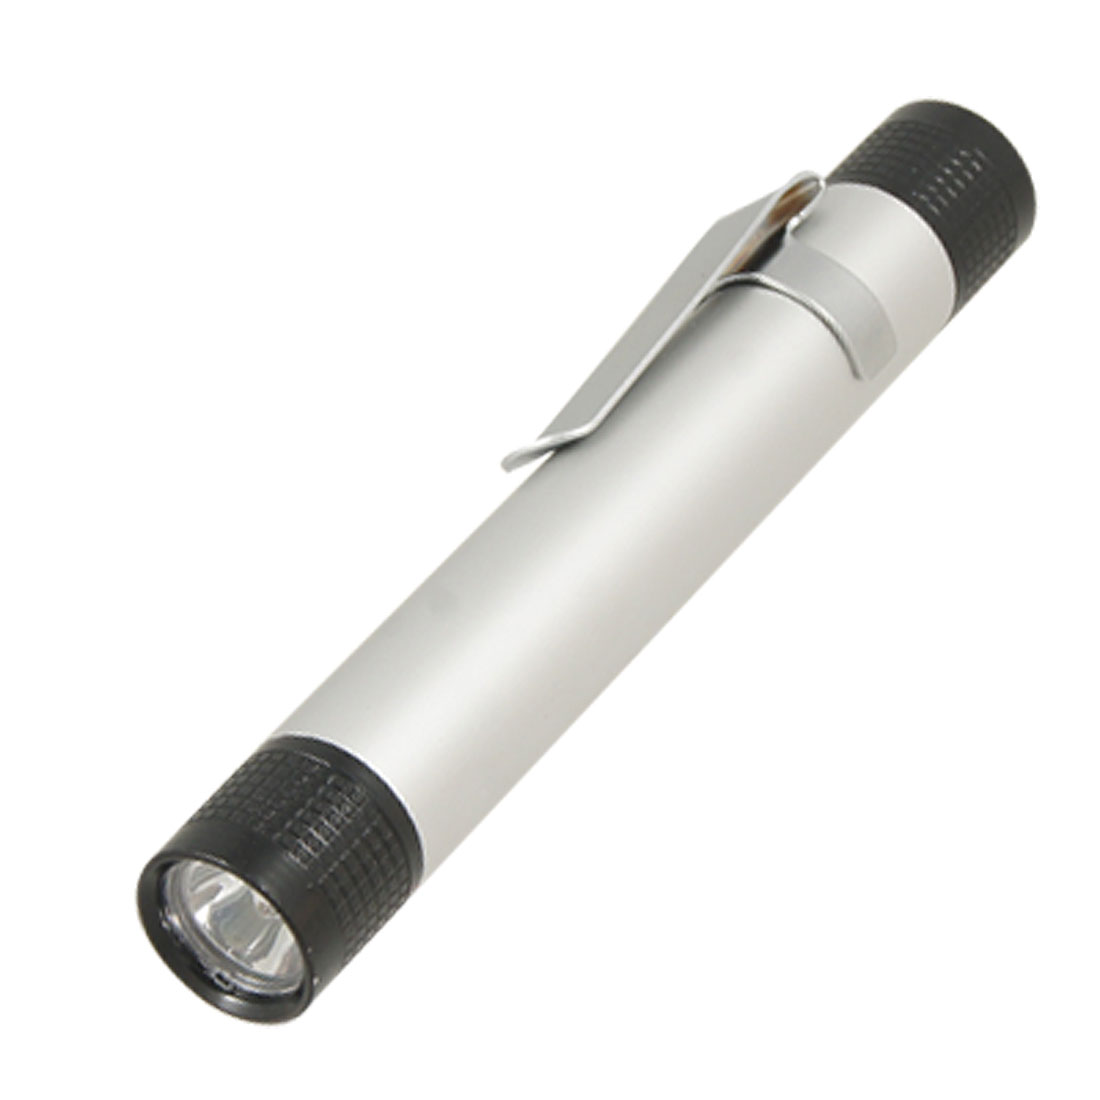 White LED Silver Tone Black Aluminum Shell Pen Design Flashlight Torch